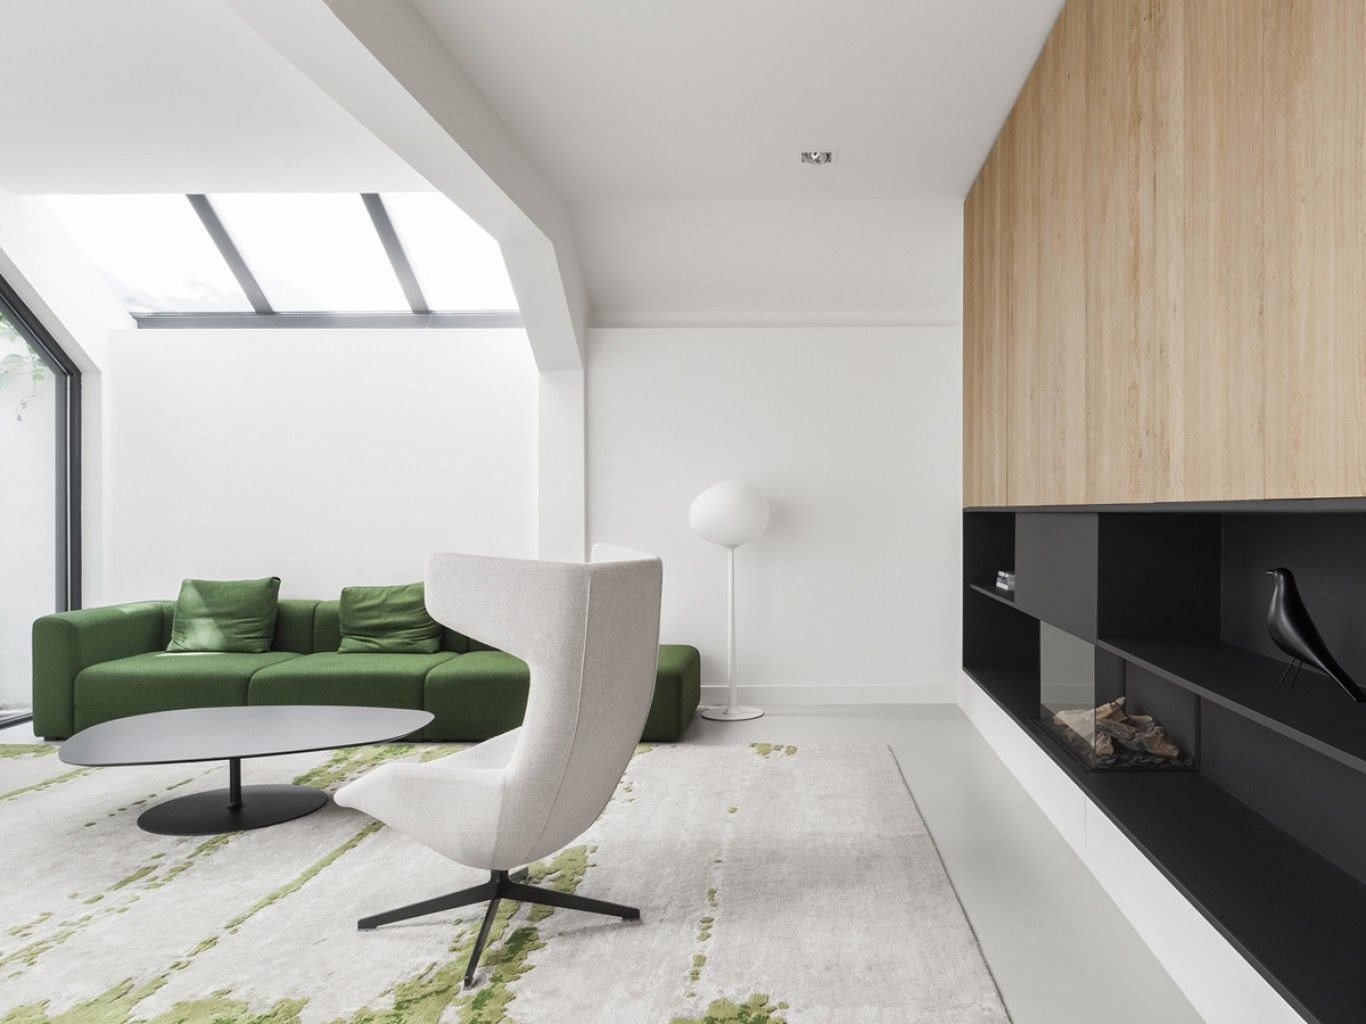 I29 interior architects home 03 5 9 10.30 fire int